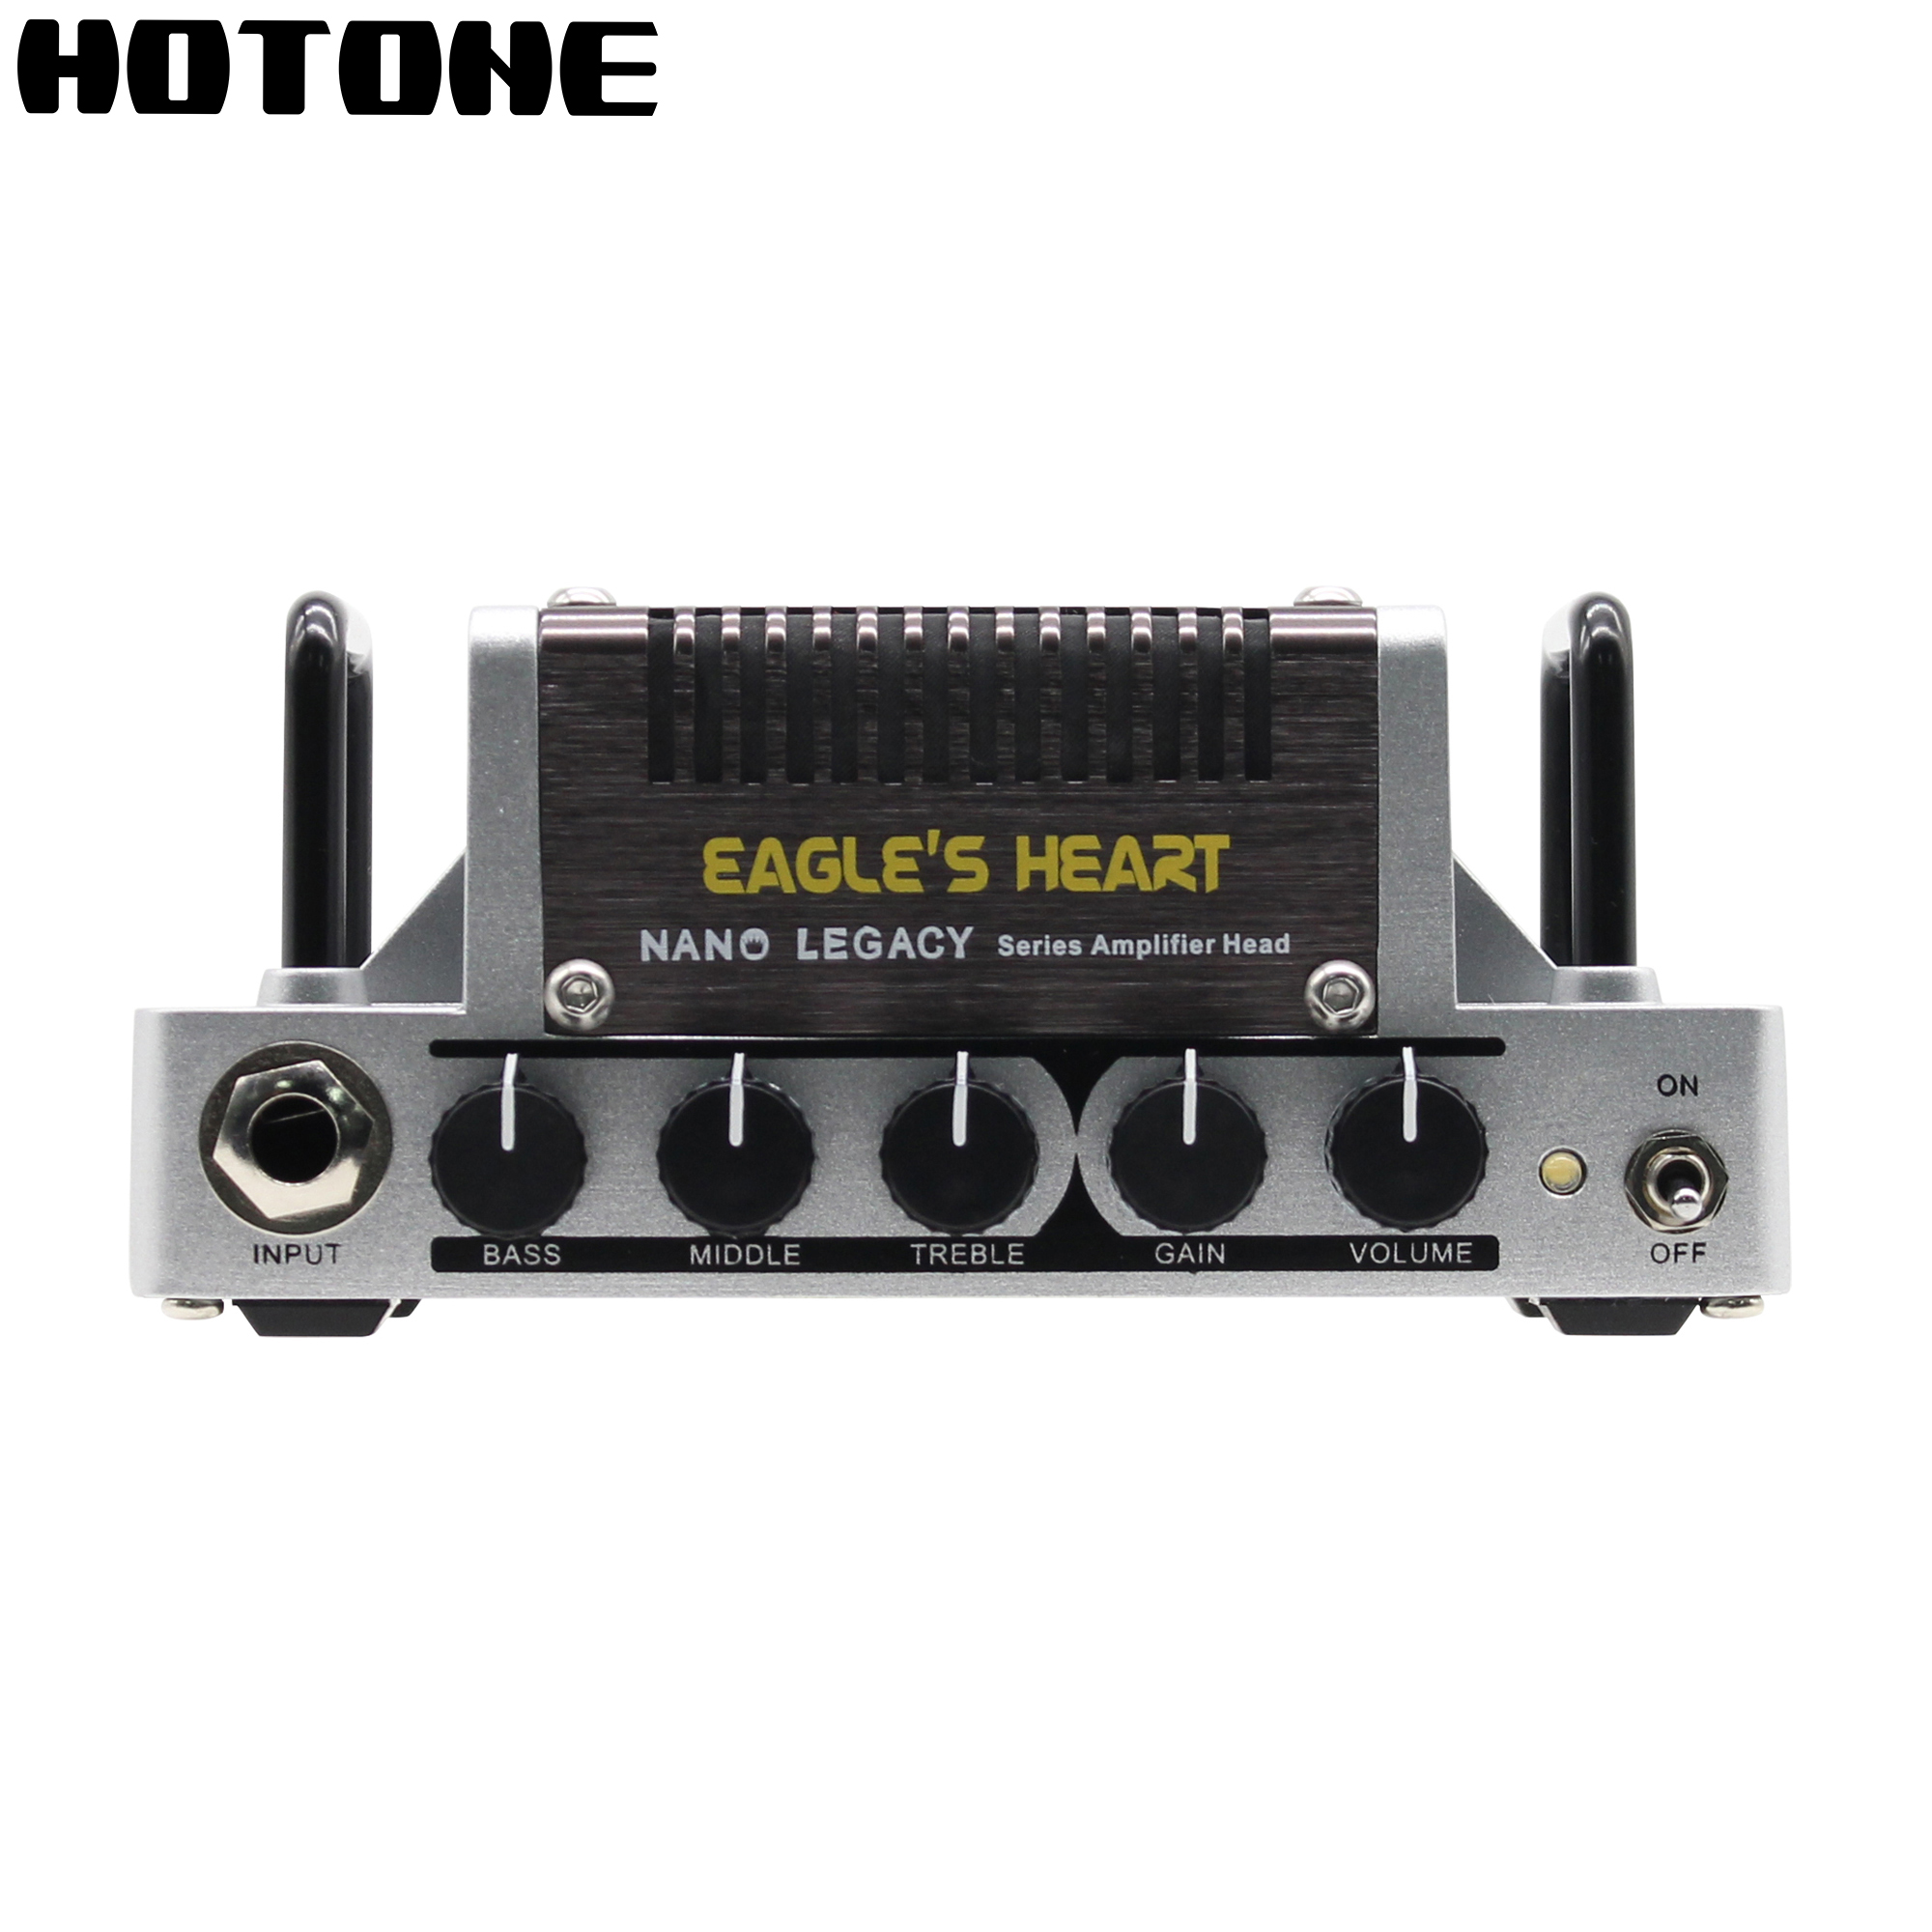 Hotone Eagle's Heart Amplifier Head 5 Watts Output Inspired by Famous Savage120 AMP Nano Legacy Series 3 Band EQ стулья для салона led by heart 2015